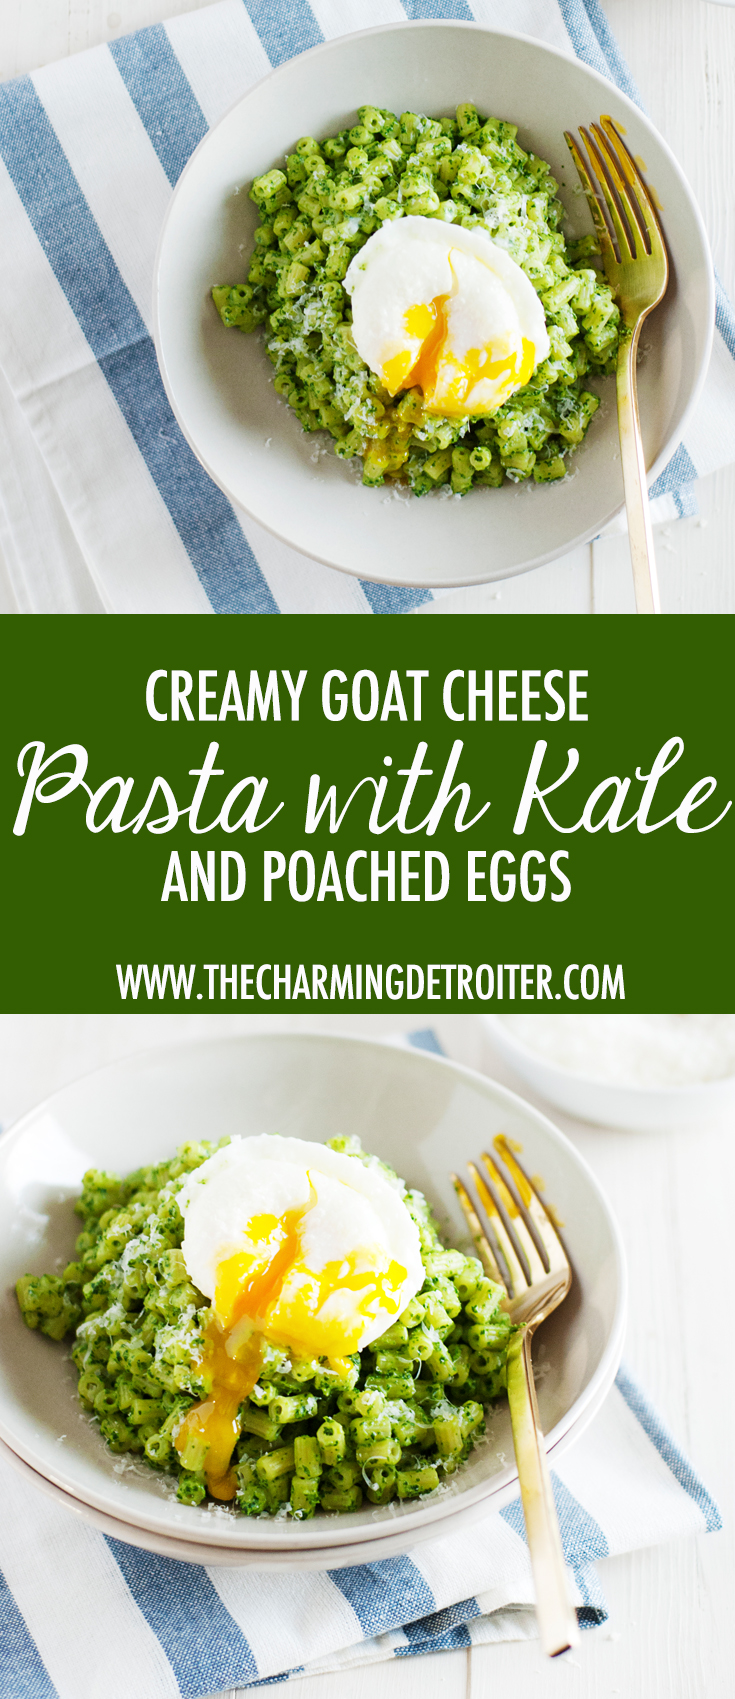 This creamy goat cheese pasta features beautifully bright and fresh kale and parsley, paired with creamy goat cheese and cream cheese over ditalini with poached eggs.